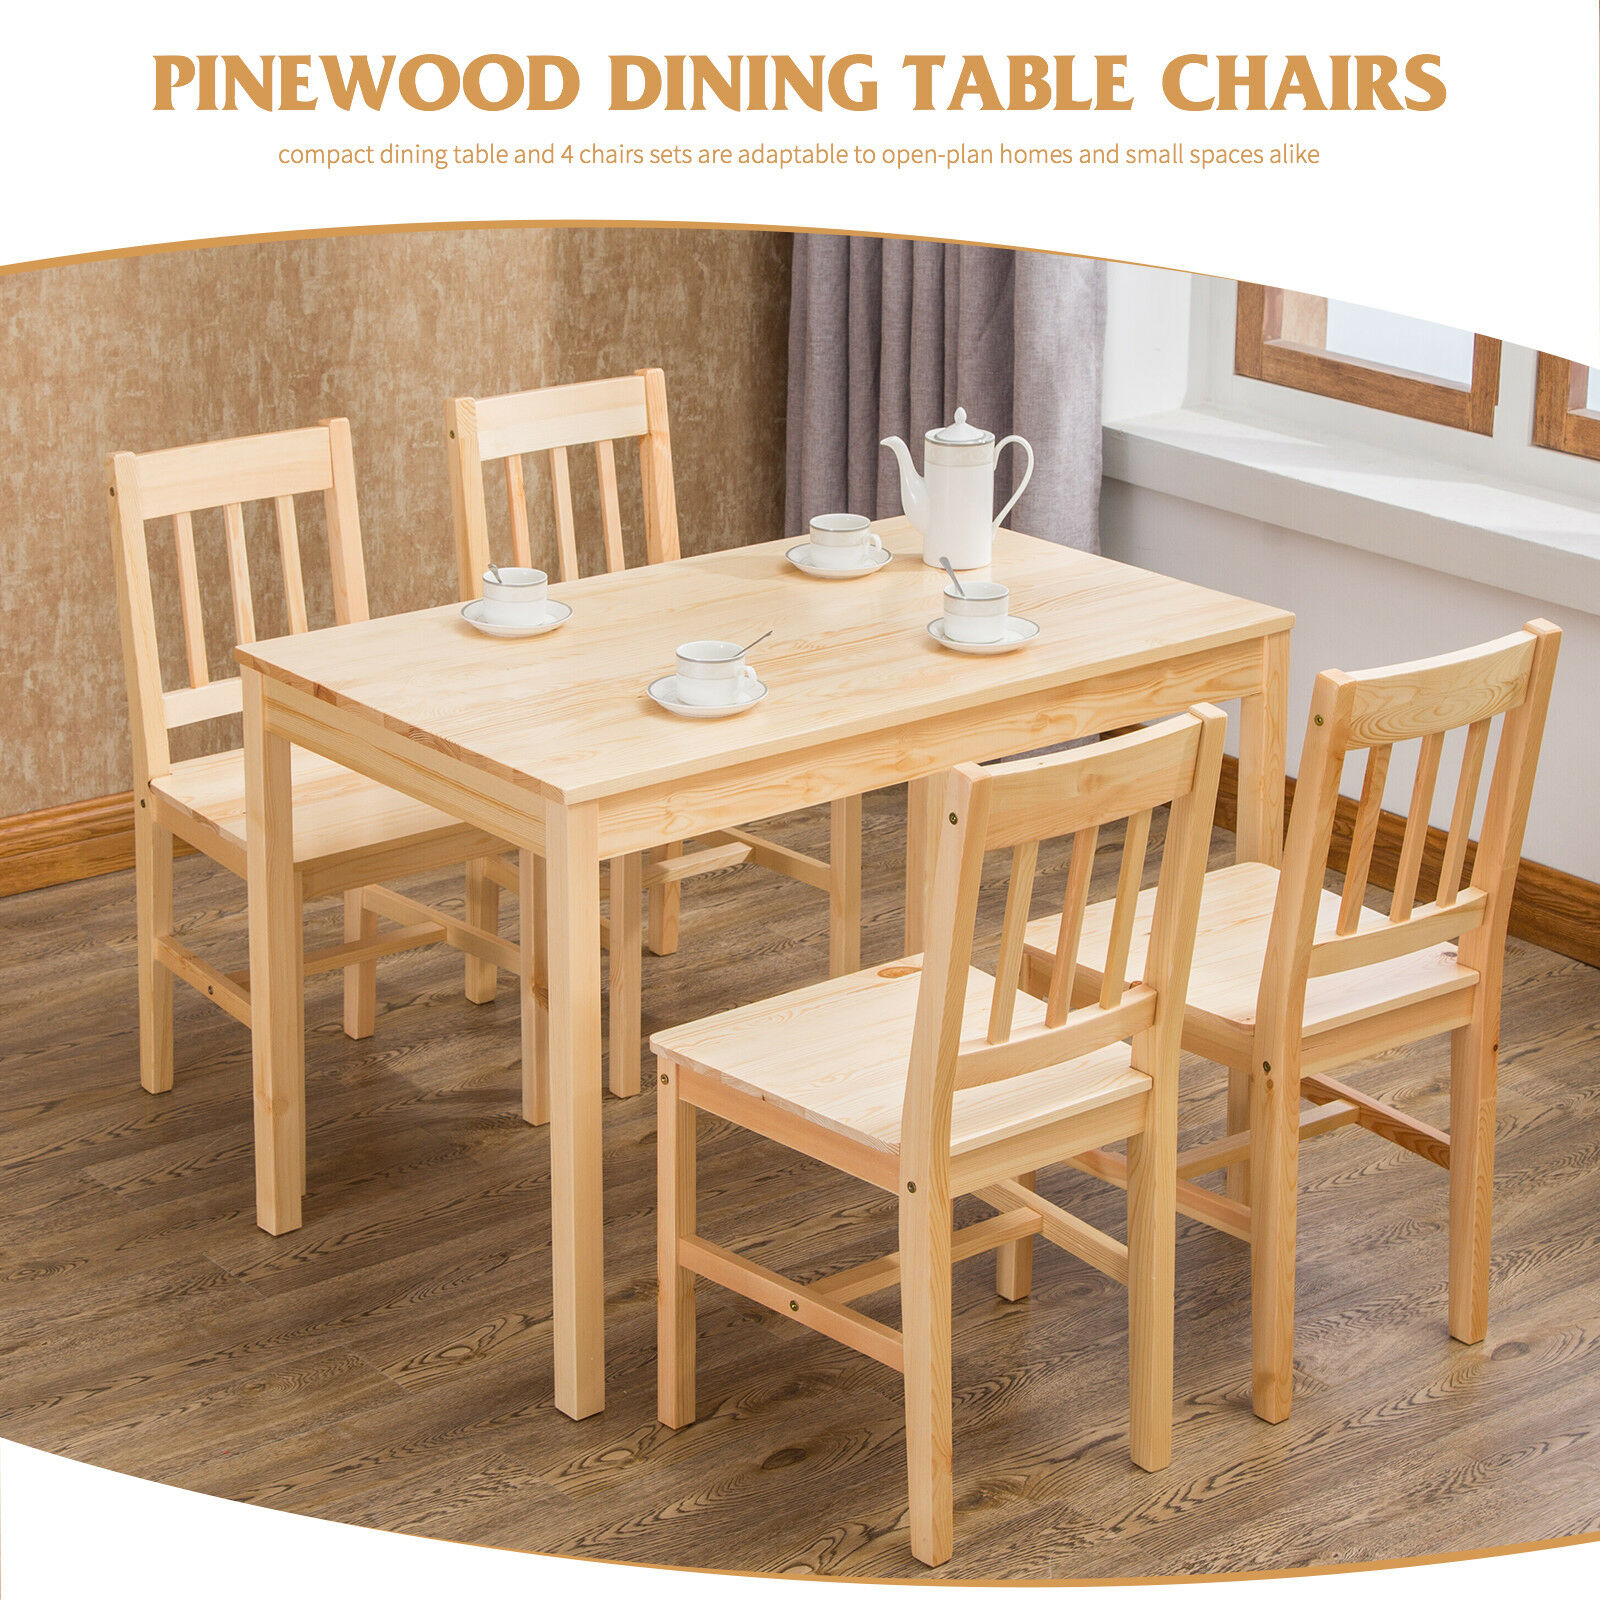 Natural Solid Pine Wood Dining Table And 4 Chairs Set Home Kitchen